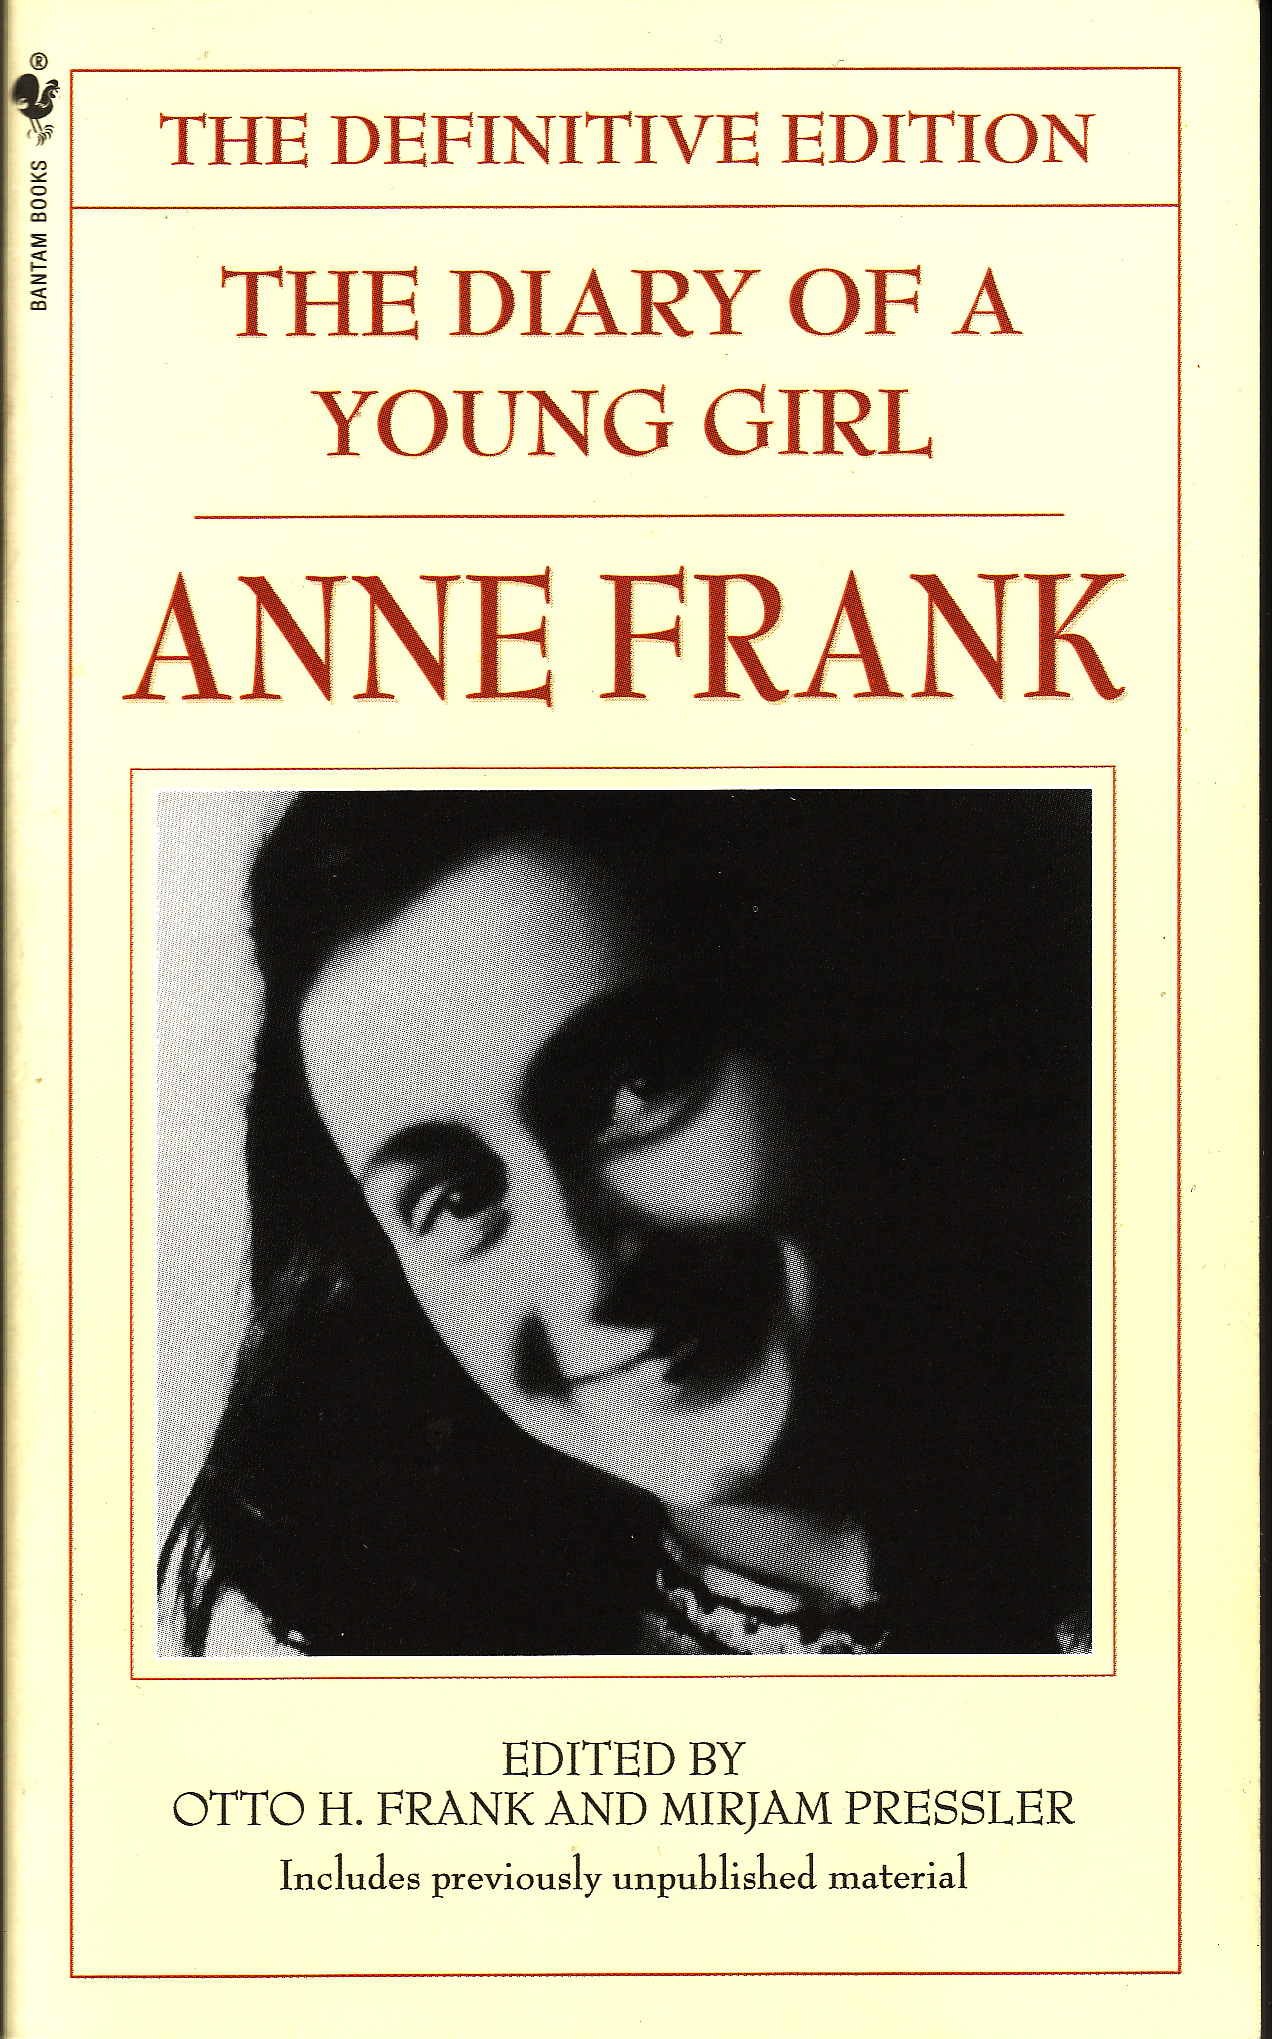 the diary of anne frank The diary of anne frank is one of the most famous and haunting stories to emerge from the 20th century the memoirs of this young jewish girl, forced to hide for nearly two years to escape nazi persecution, are an essential part of how we remember one of the darkest periods of our human history .